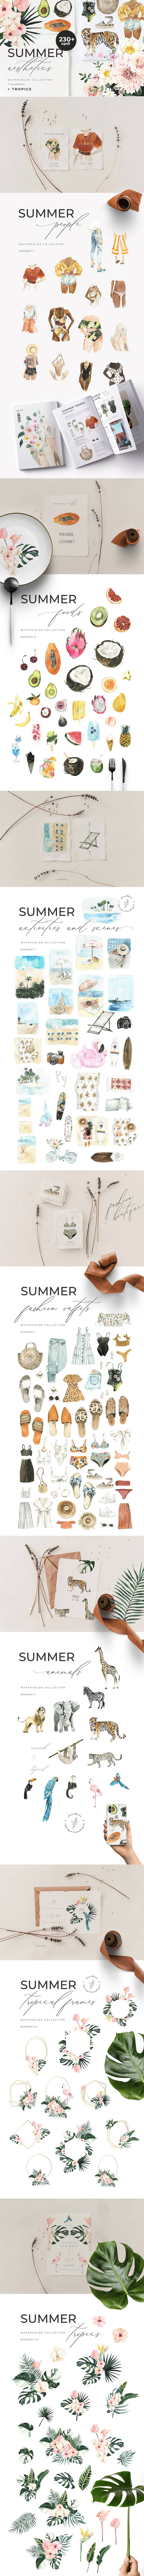 creative-designers-complete-collection-011-a